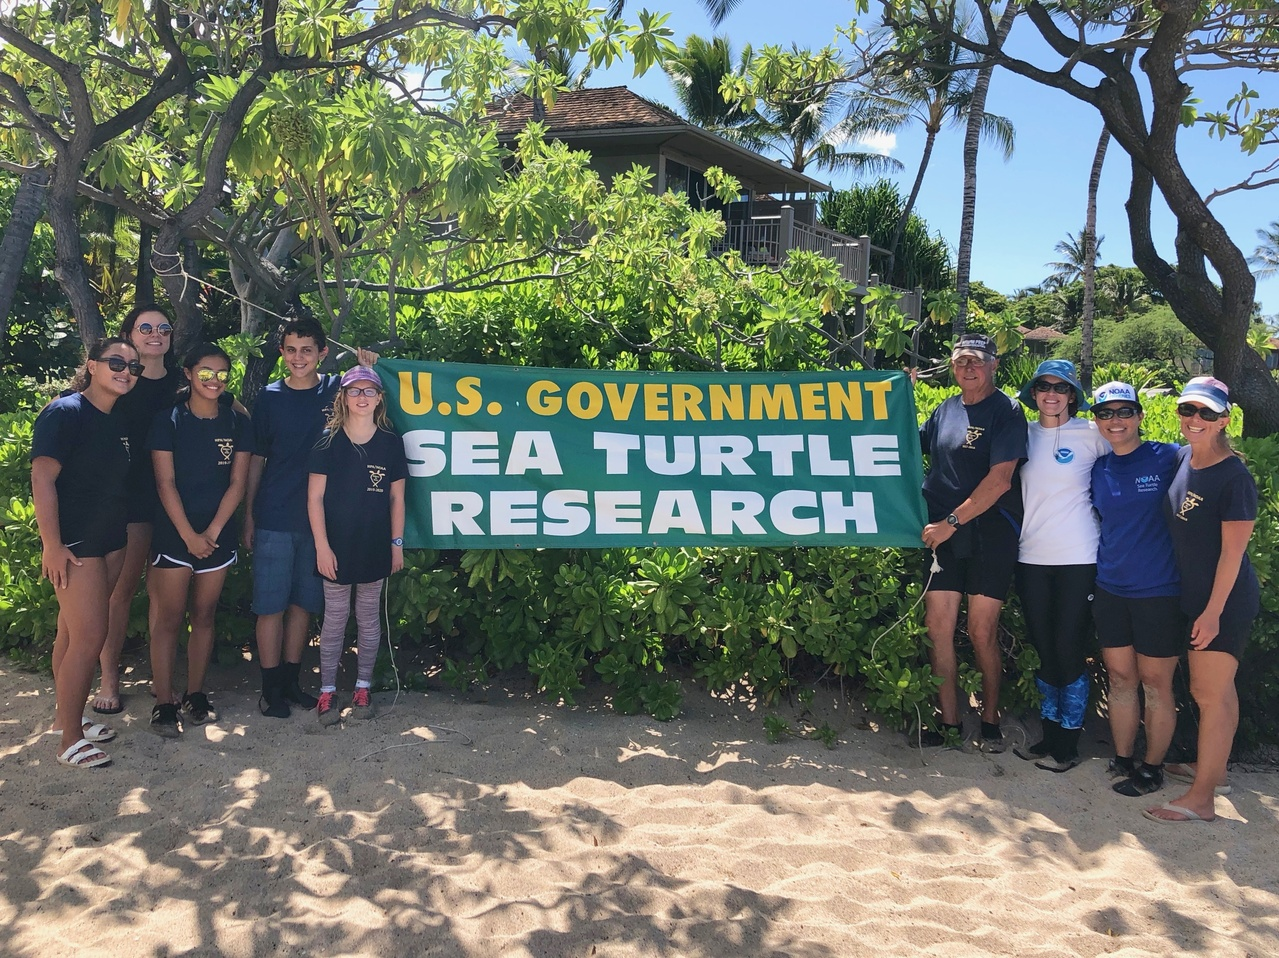 The Sea Turtle Research Group poses for a photo at Hualalai, Hawaii Island.